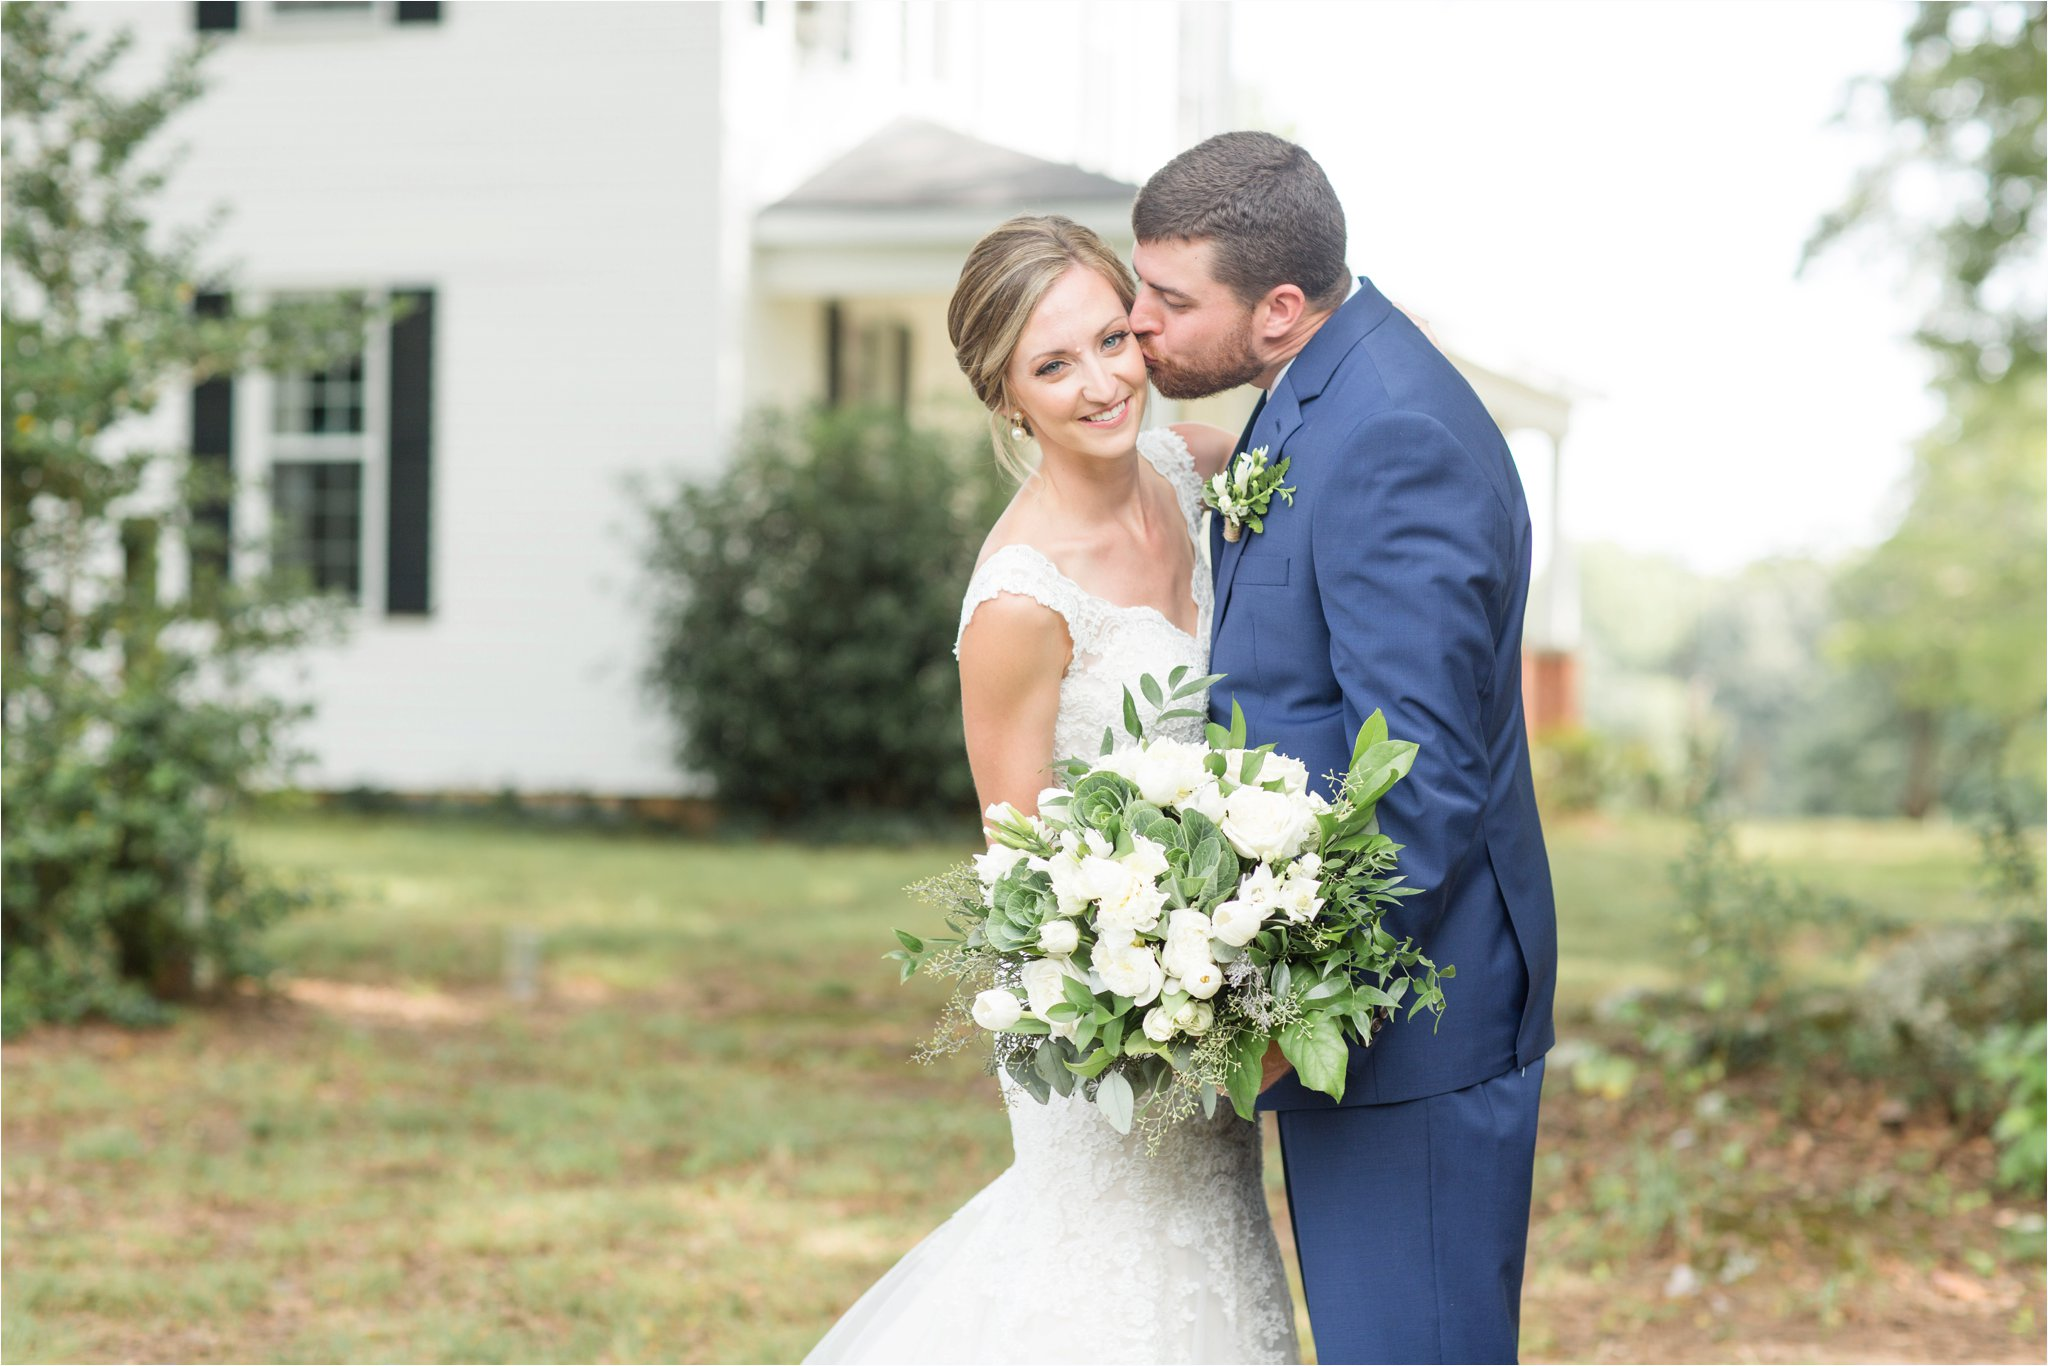 Outdoor Southern Wedding | South Carolina Wedding Photography | Christa Rene Photography